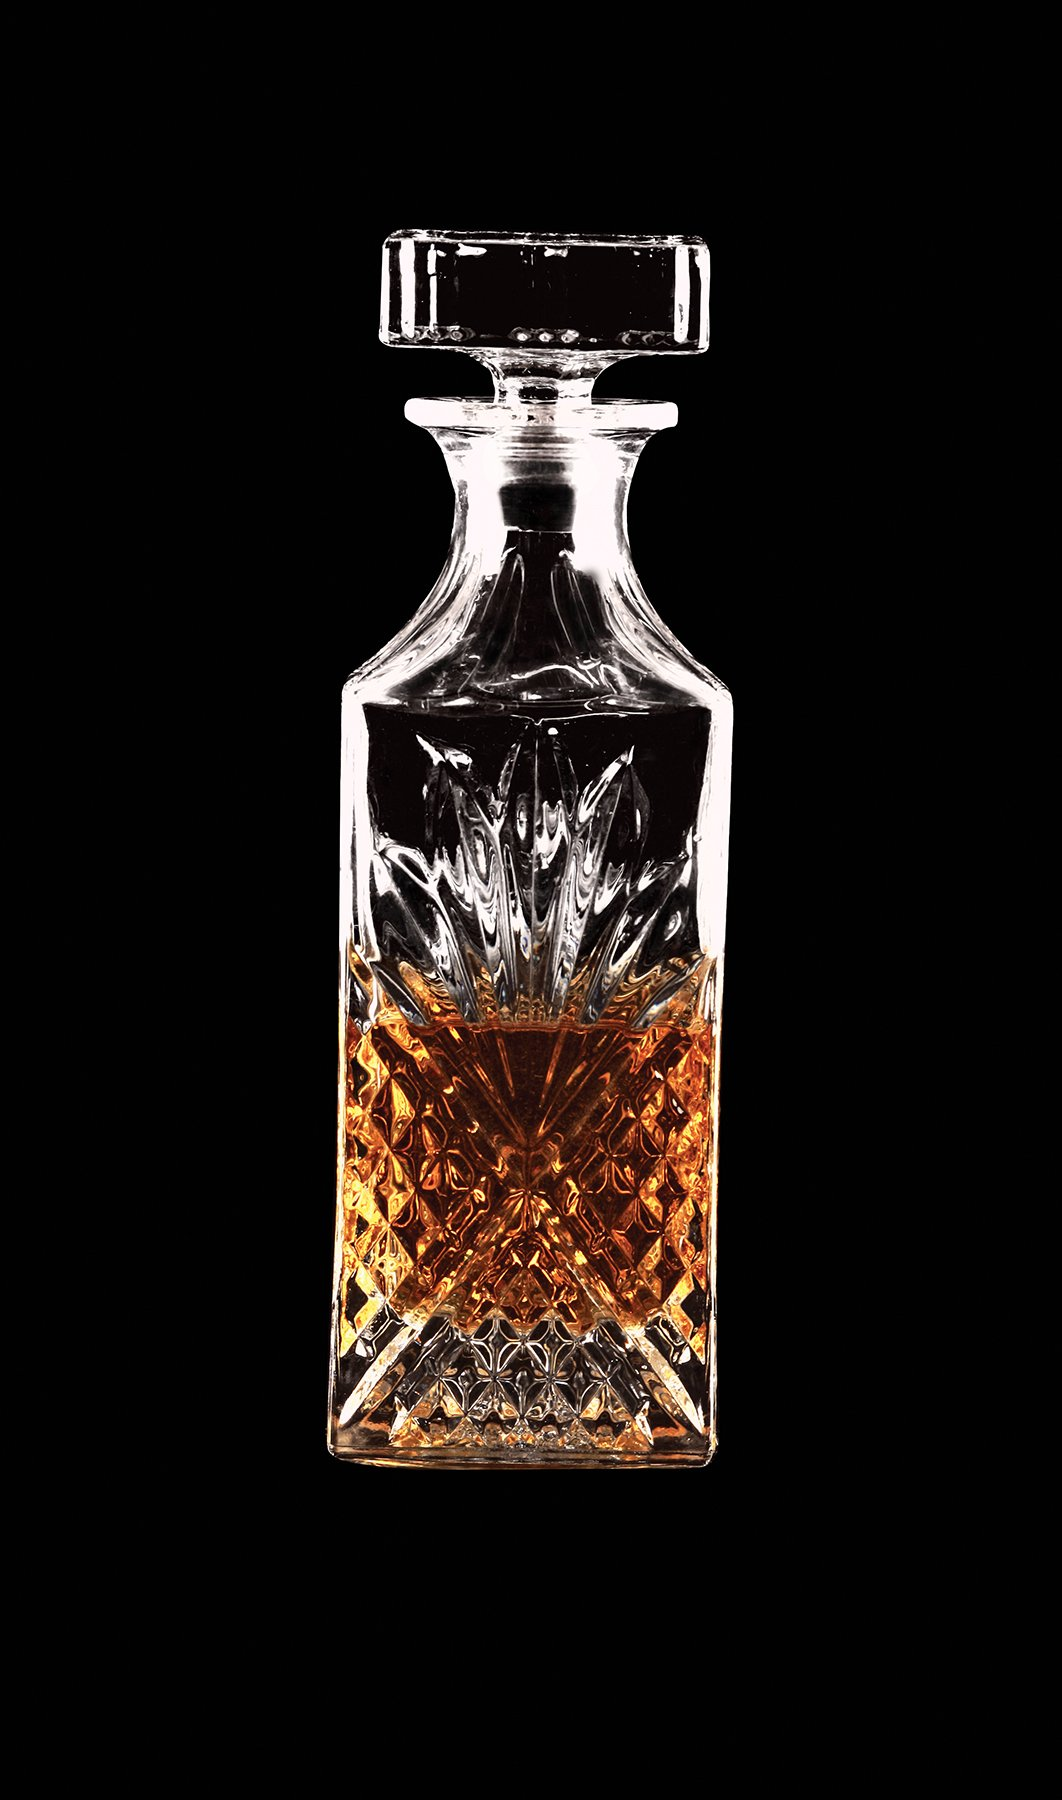 Circleware Empire Elegant Liquor Whiskey Glass Decanter with Square Stopper, 768ml, Kitchen Drinking Glassware Carafe Pitcher for Water, Wine, Liquor Beverage, Beer and Best Bar Barrel Dining Décor